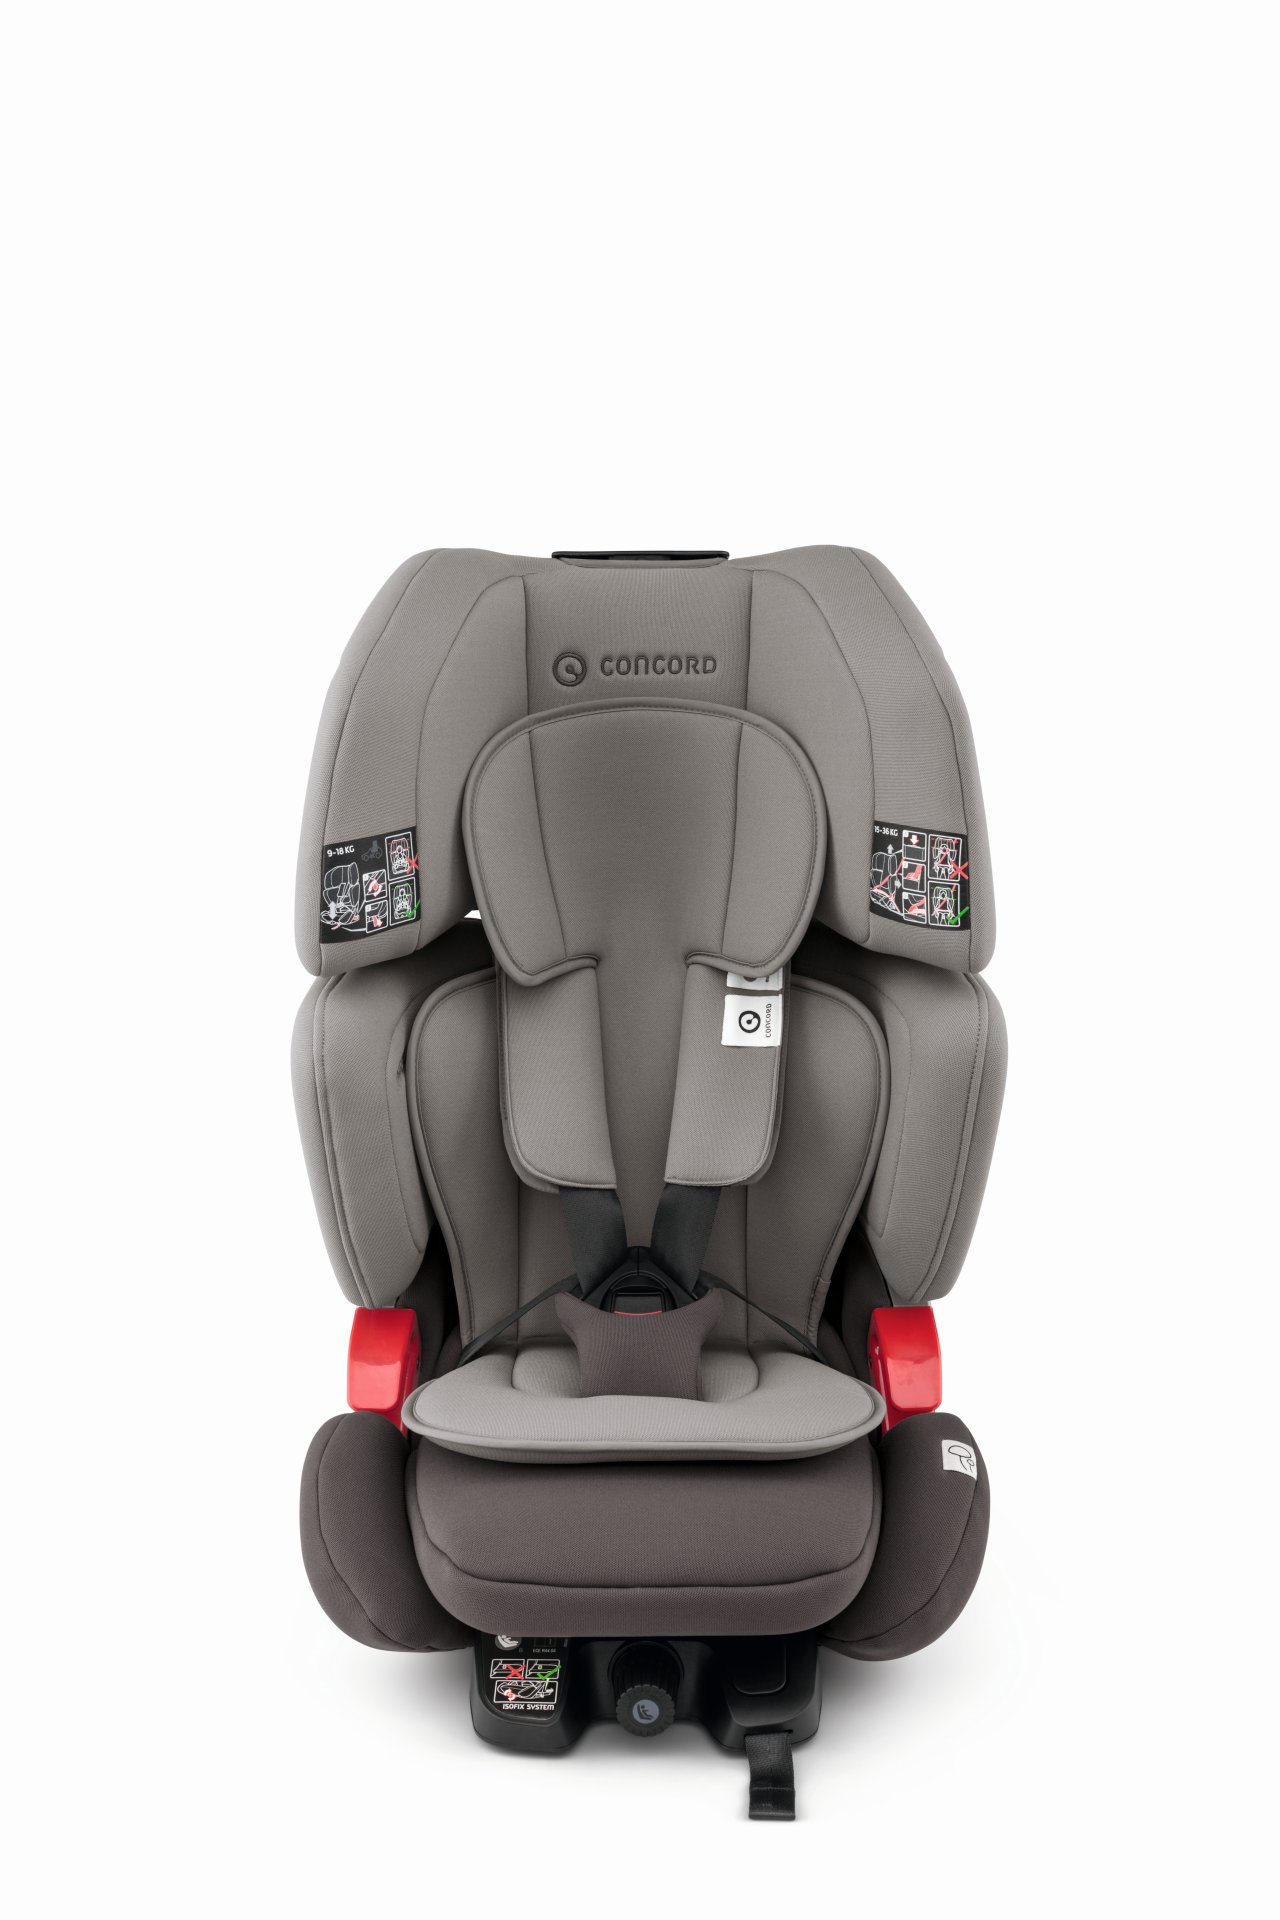 concord child car seat vario xt 5 2019 moonshine grey. Black Bedroom Furniture Sets. Home Design Ideas